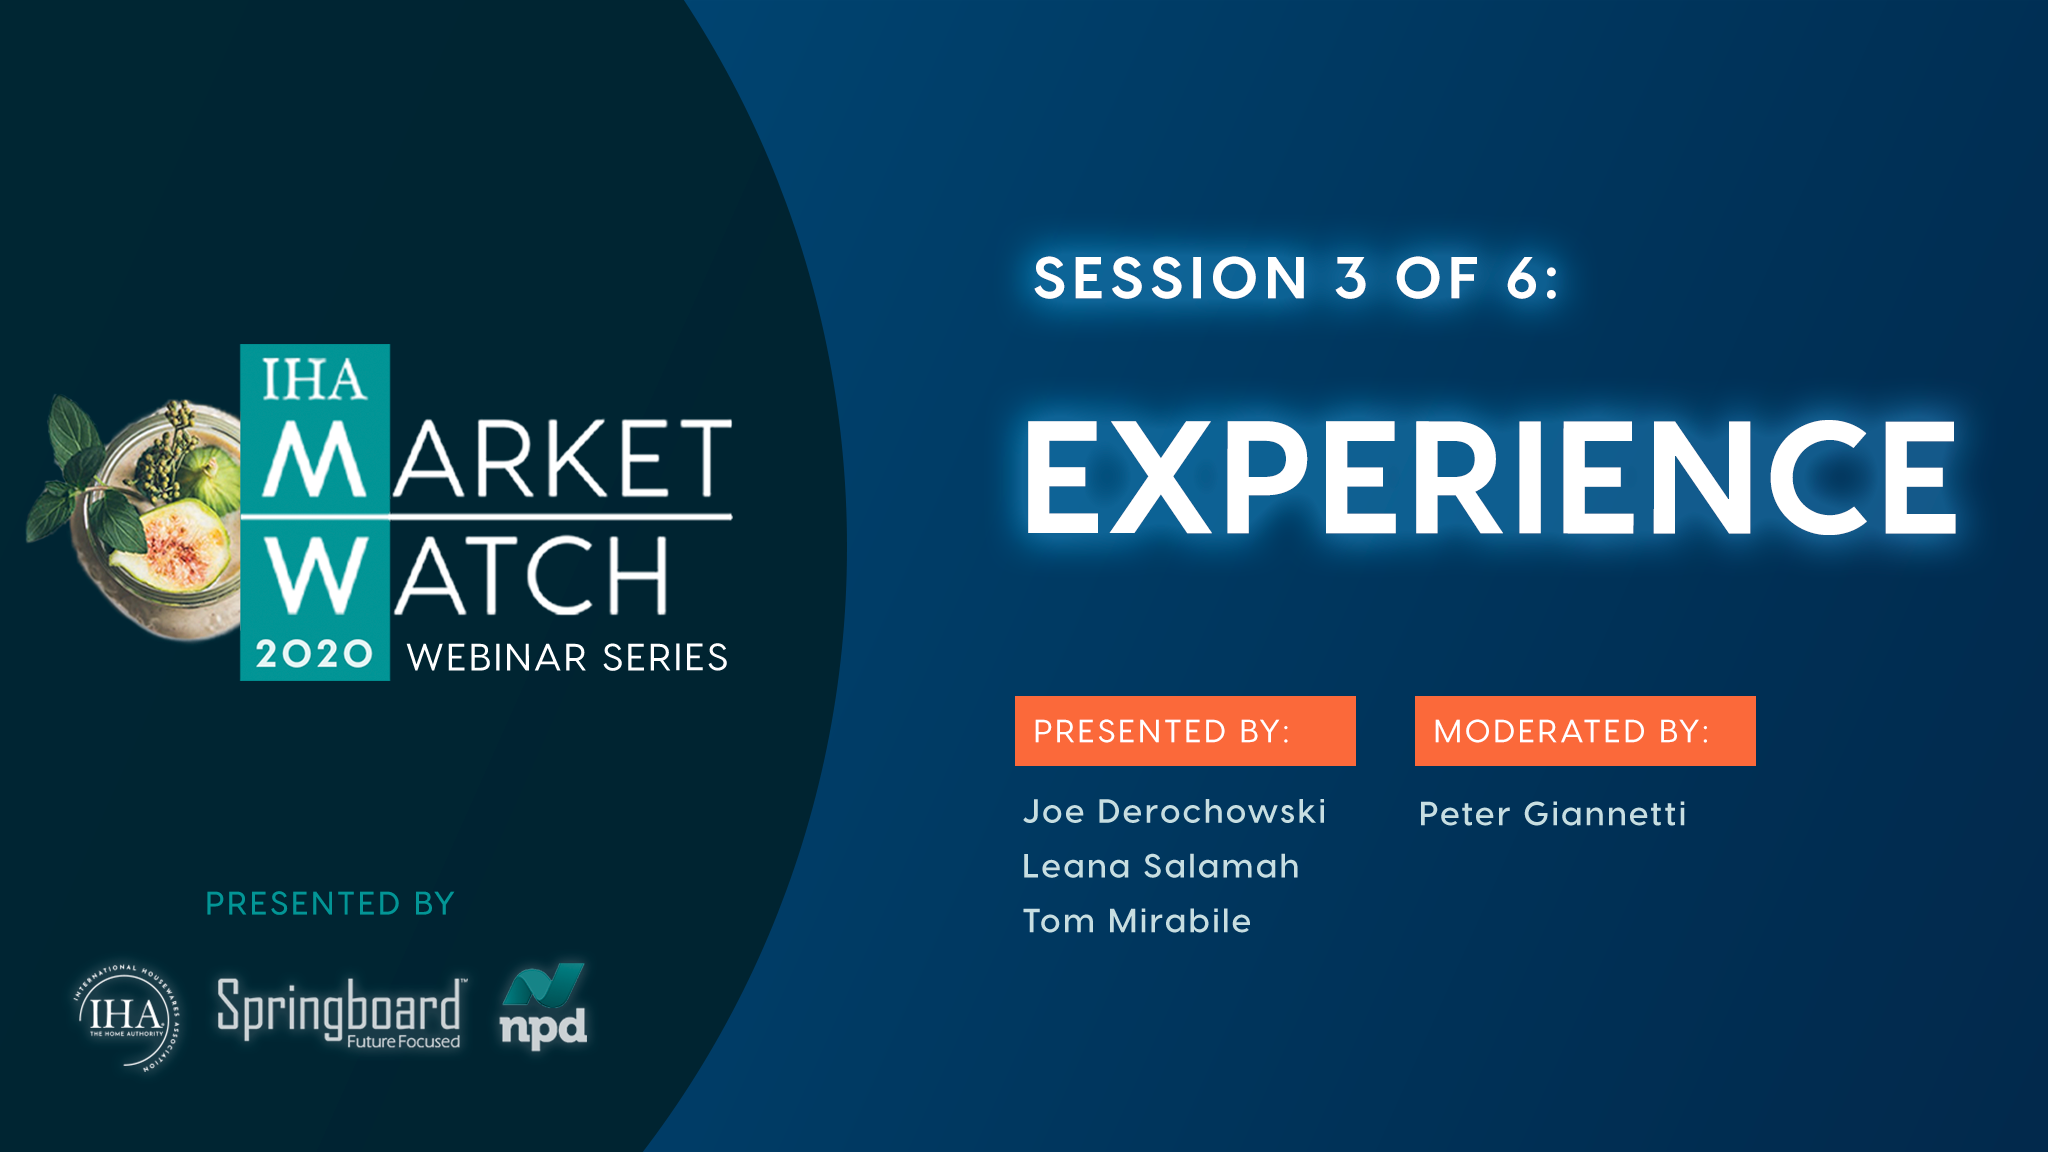 IHA Market Watch - Session 3 - Experience